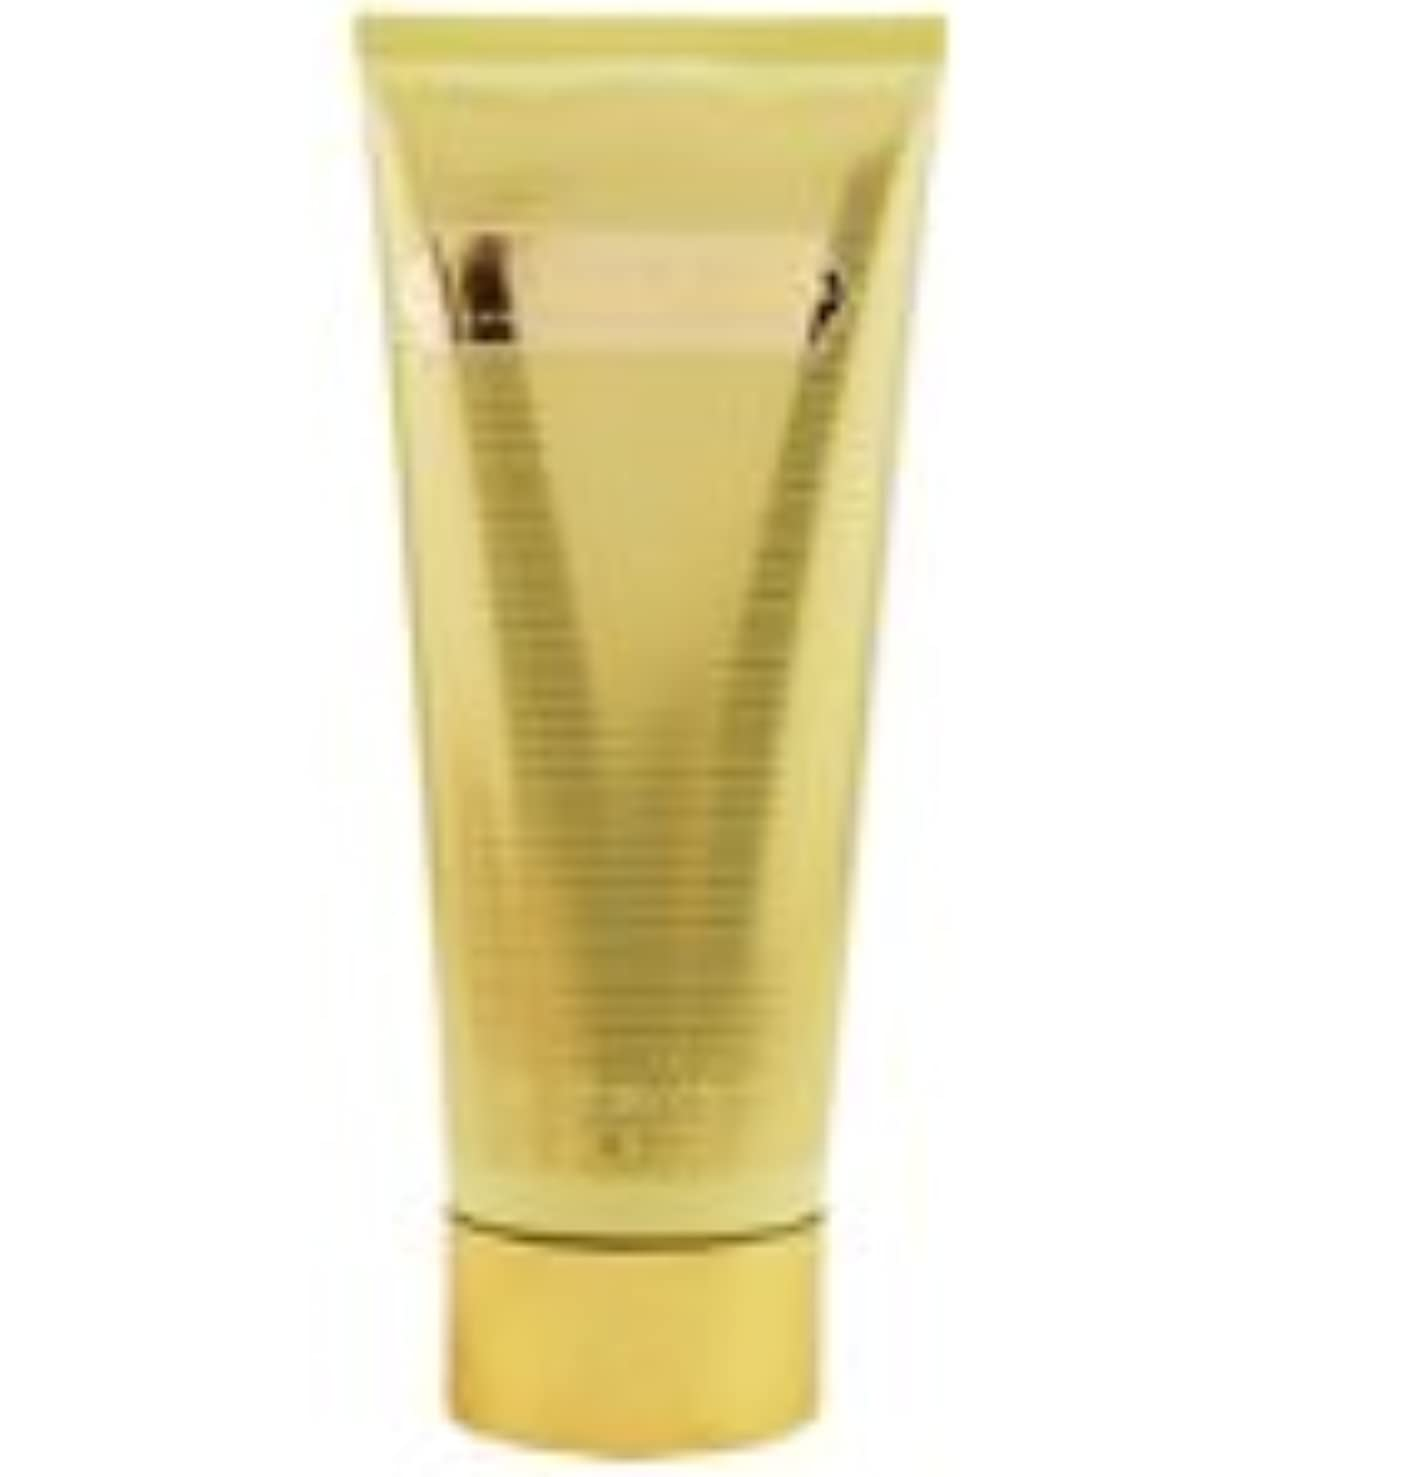 Covet By Sarah Jessica Parker For Women. Body Lotion 6.7-Ounces